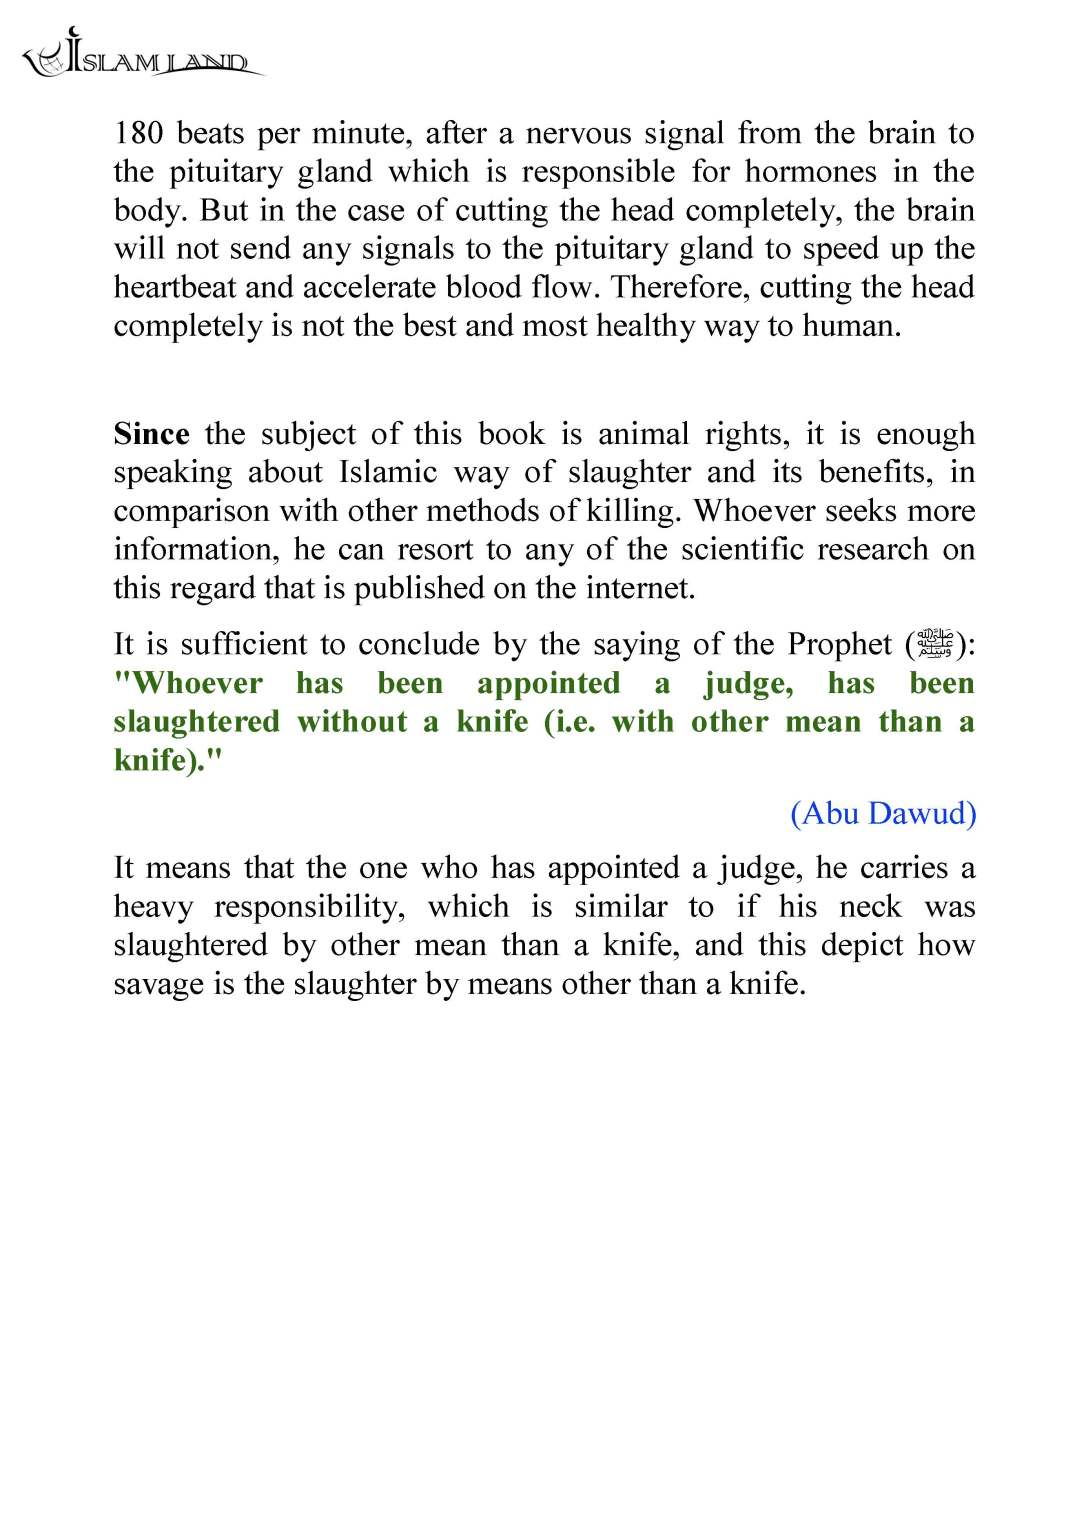 en_ANIMAL_RIGHTS_IN_ISLAMIC_CHRISTIAN_AND_JEWISH_SHARIA_LAW_Page_38